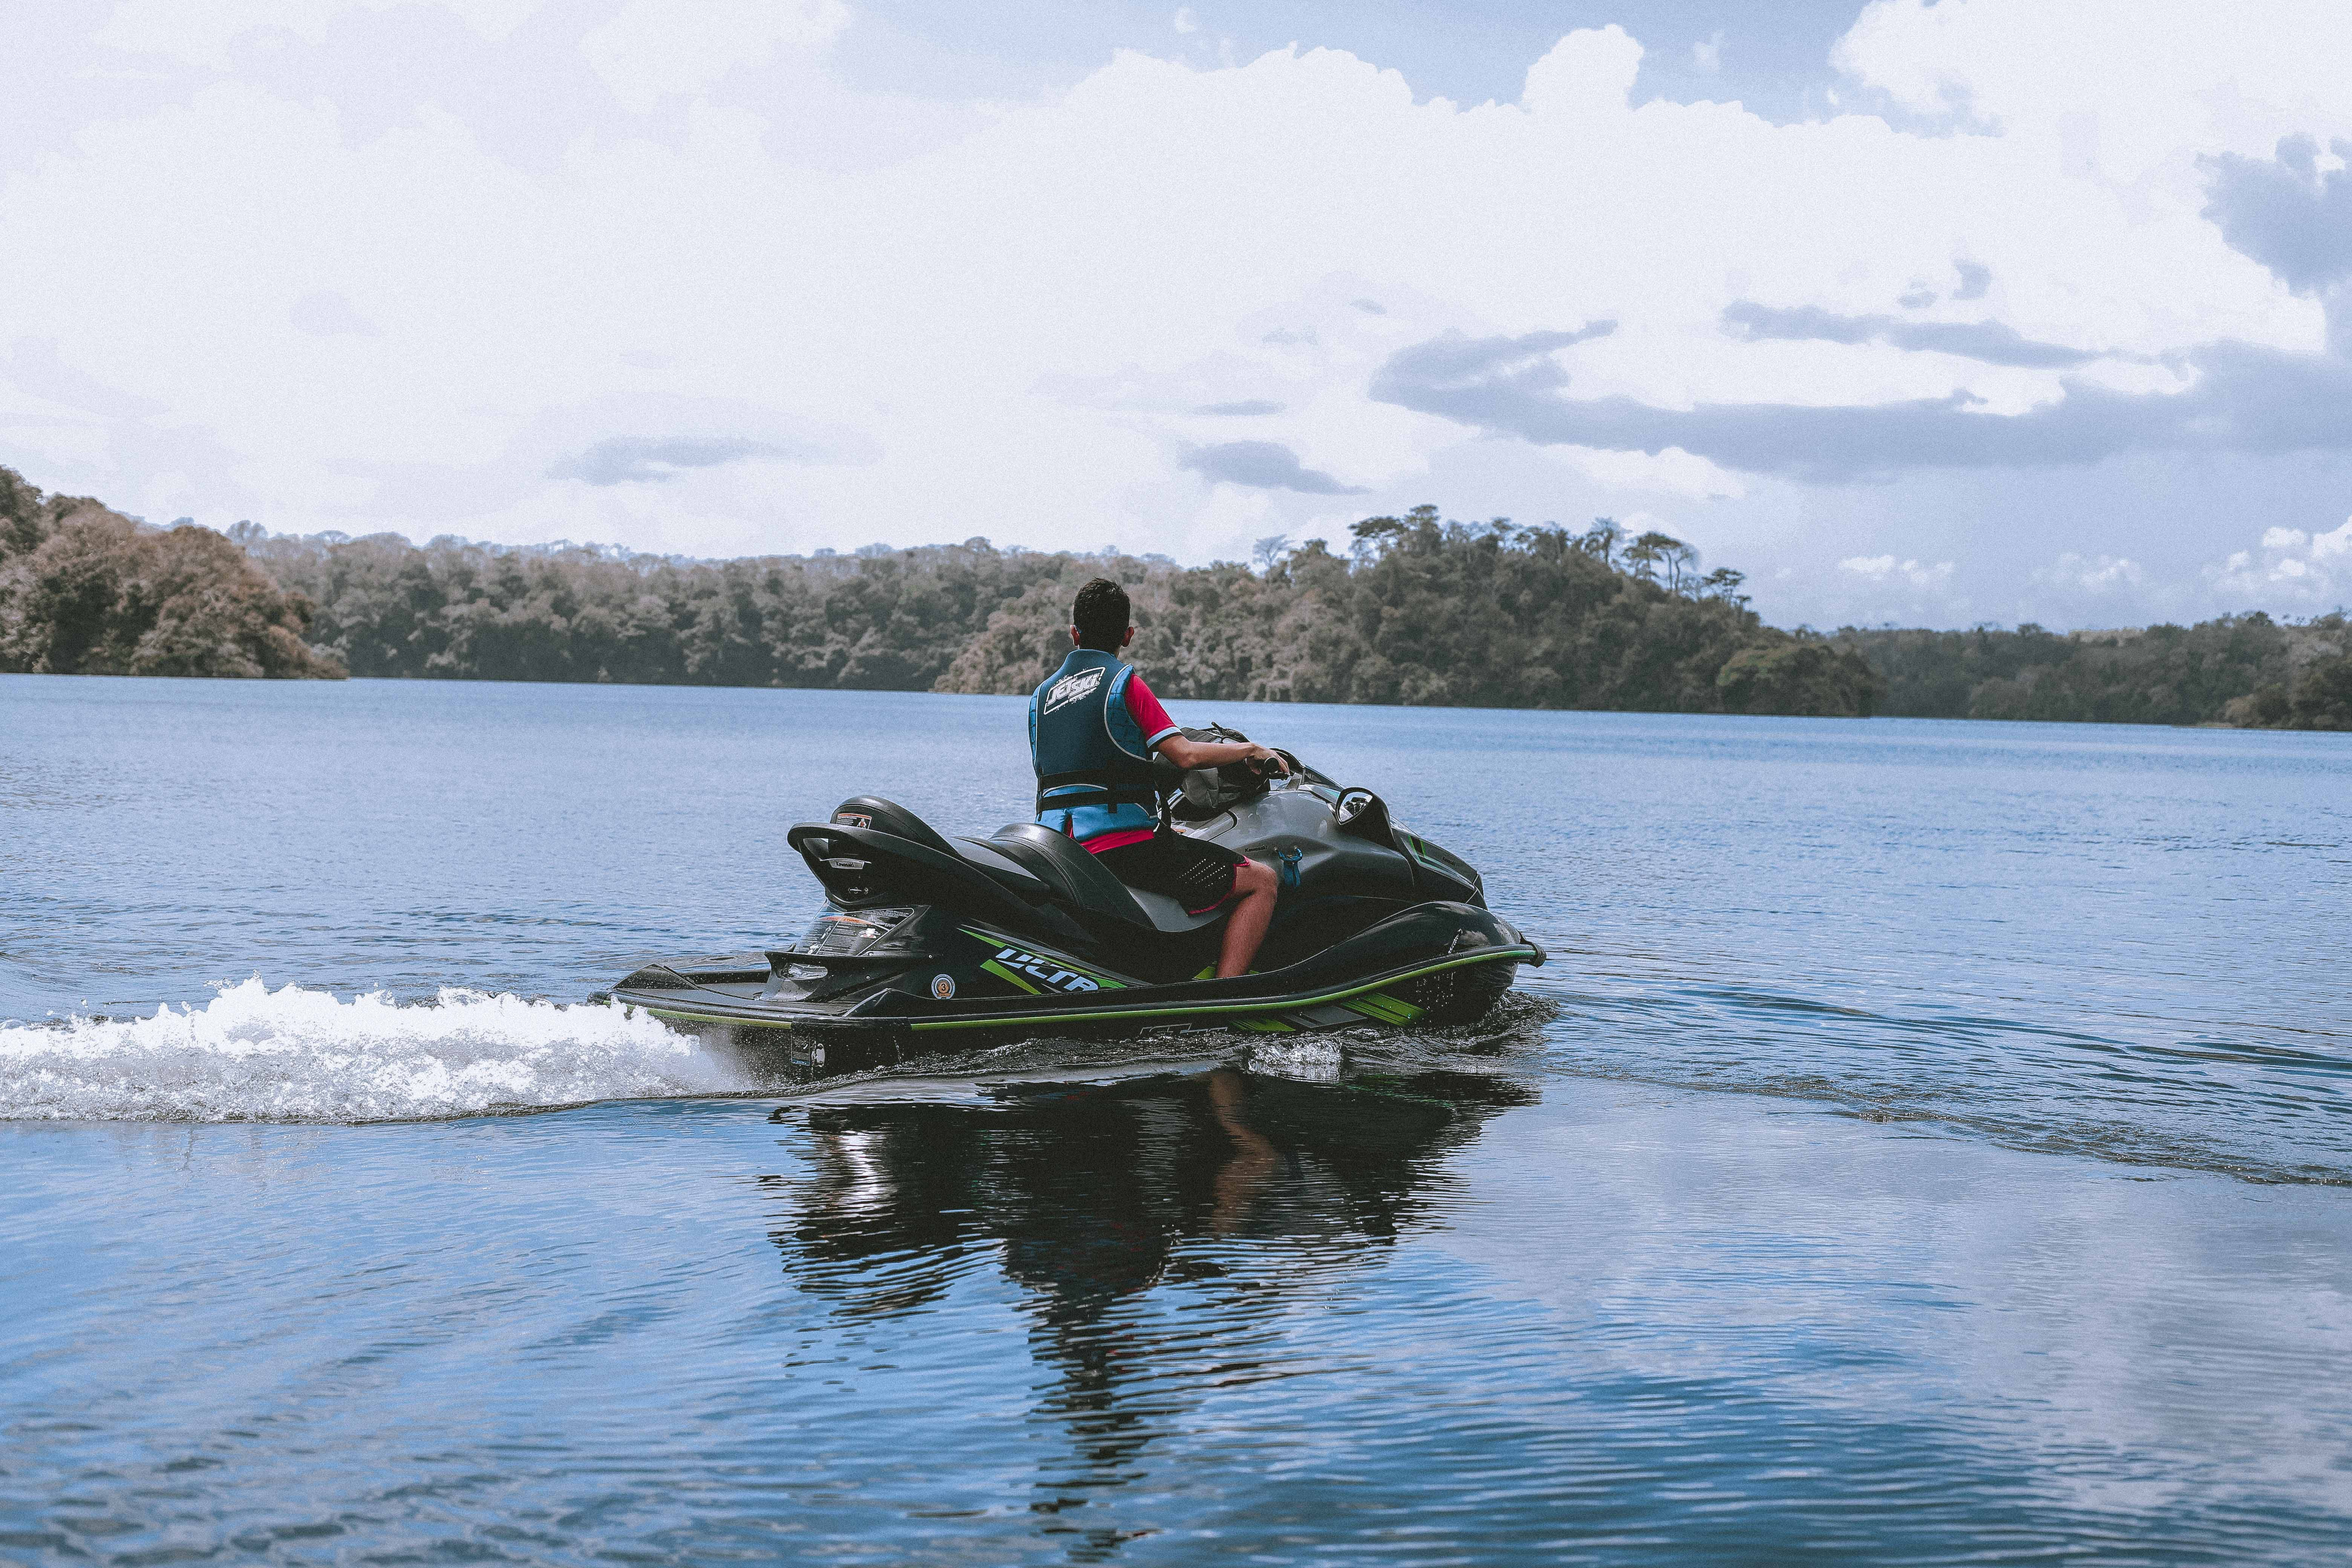 Man Riding on Green Personal Watercraft on Body of Water